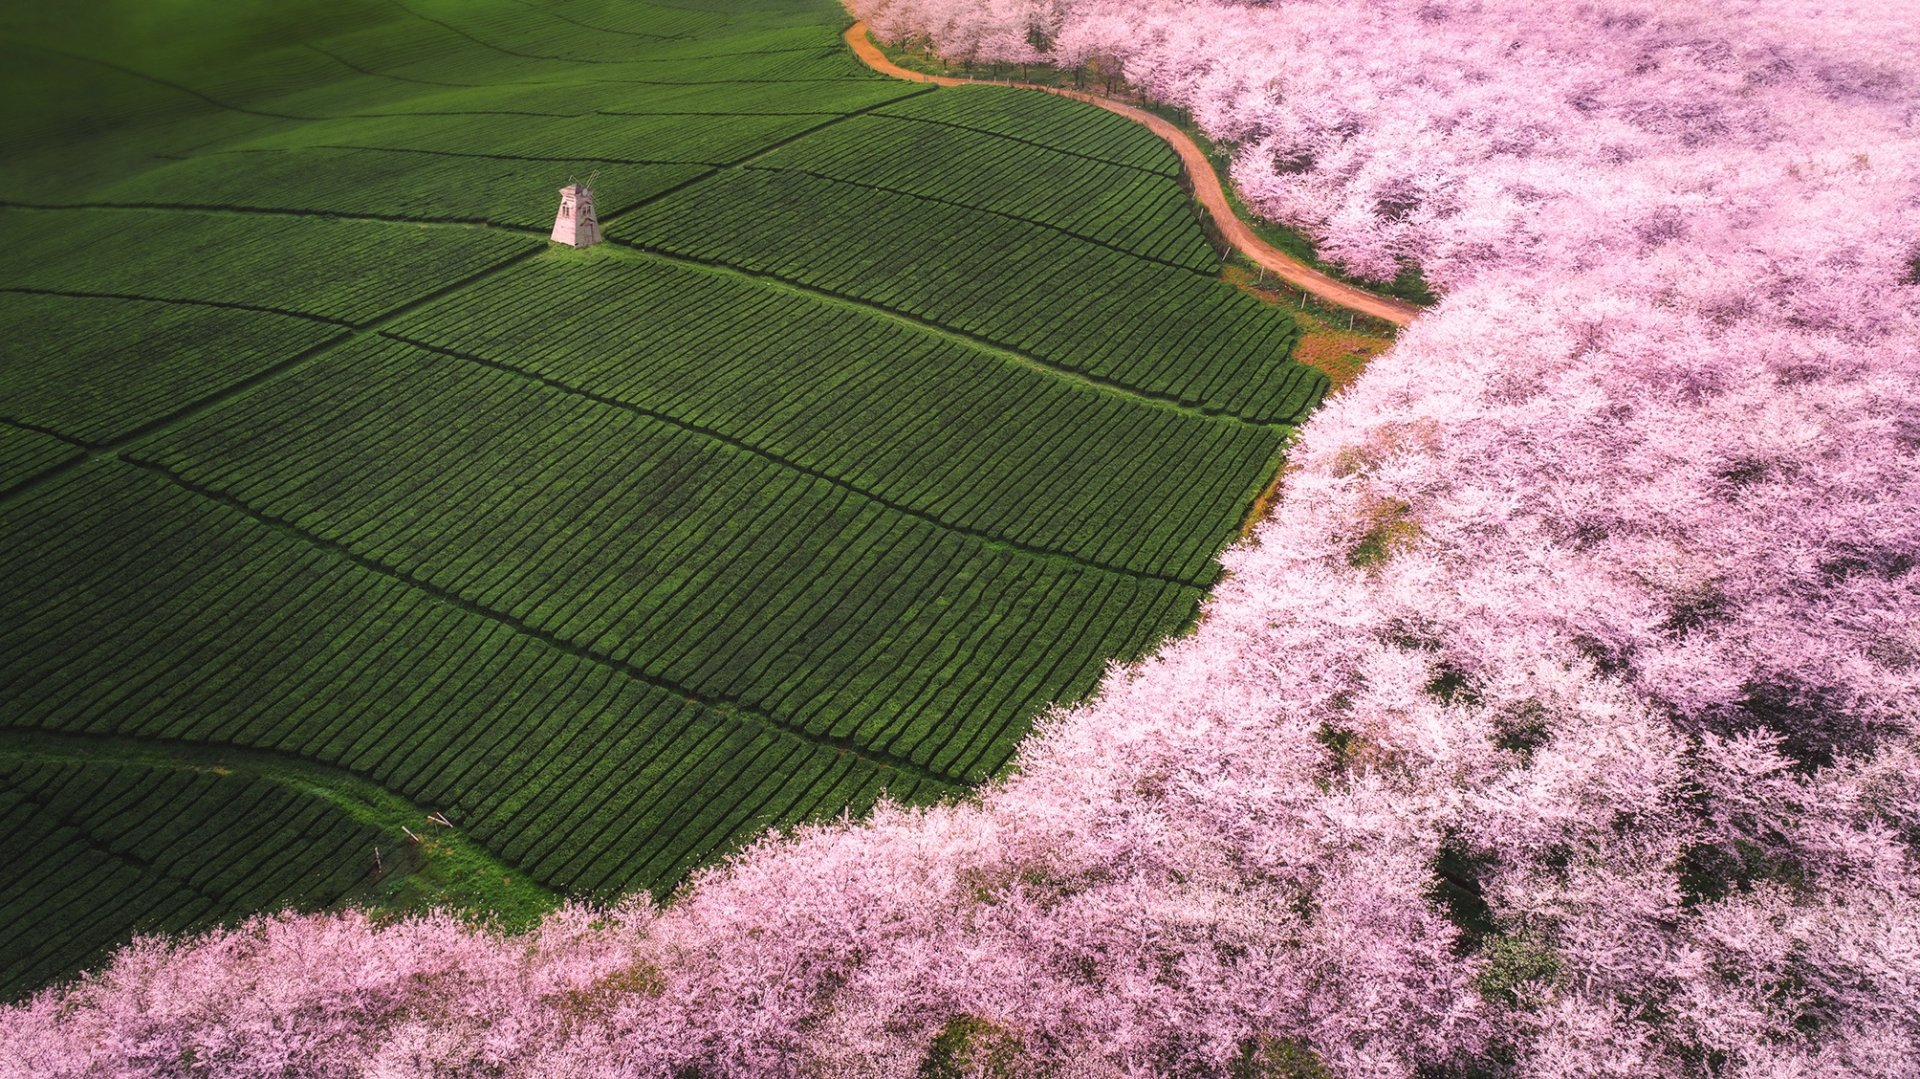 Man Made - Tea Plantation  Field Aerial Blossom Nature Wallpaper